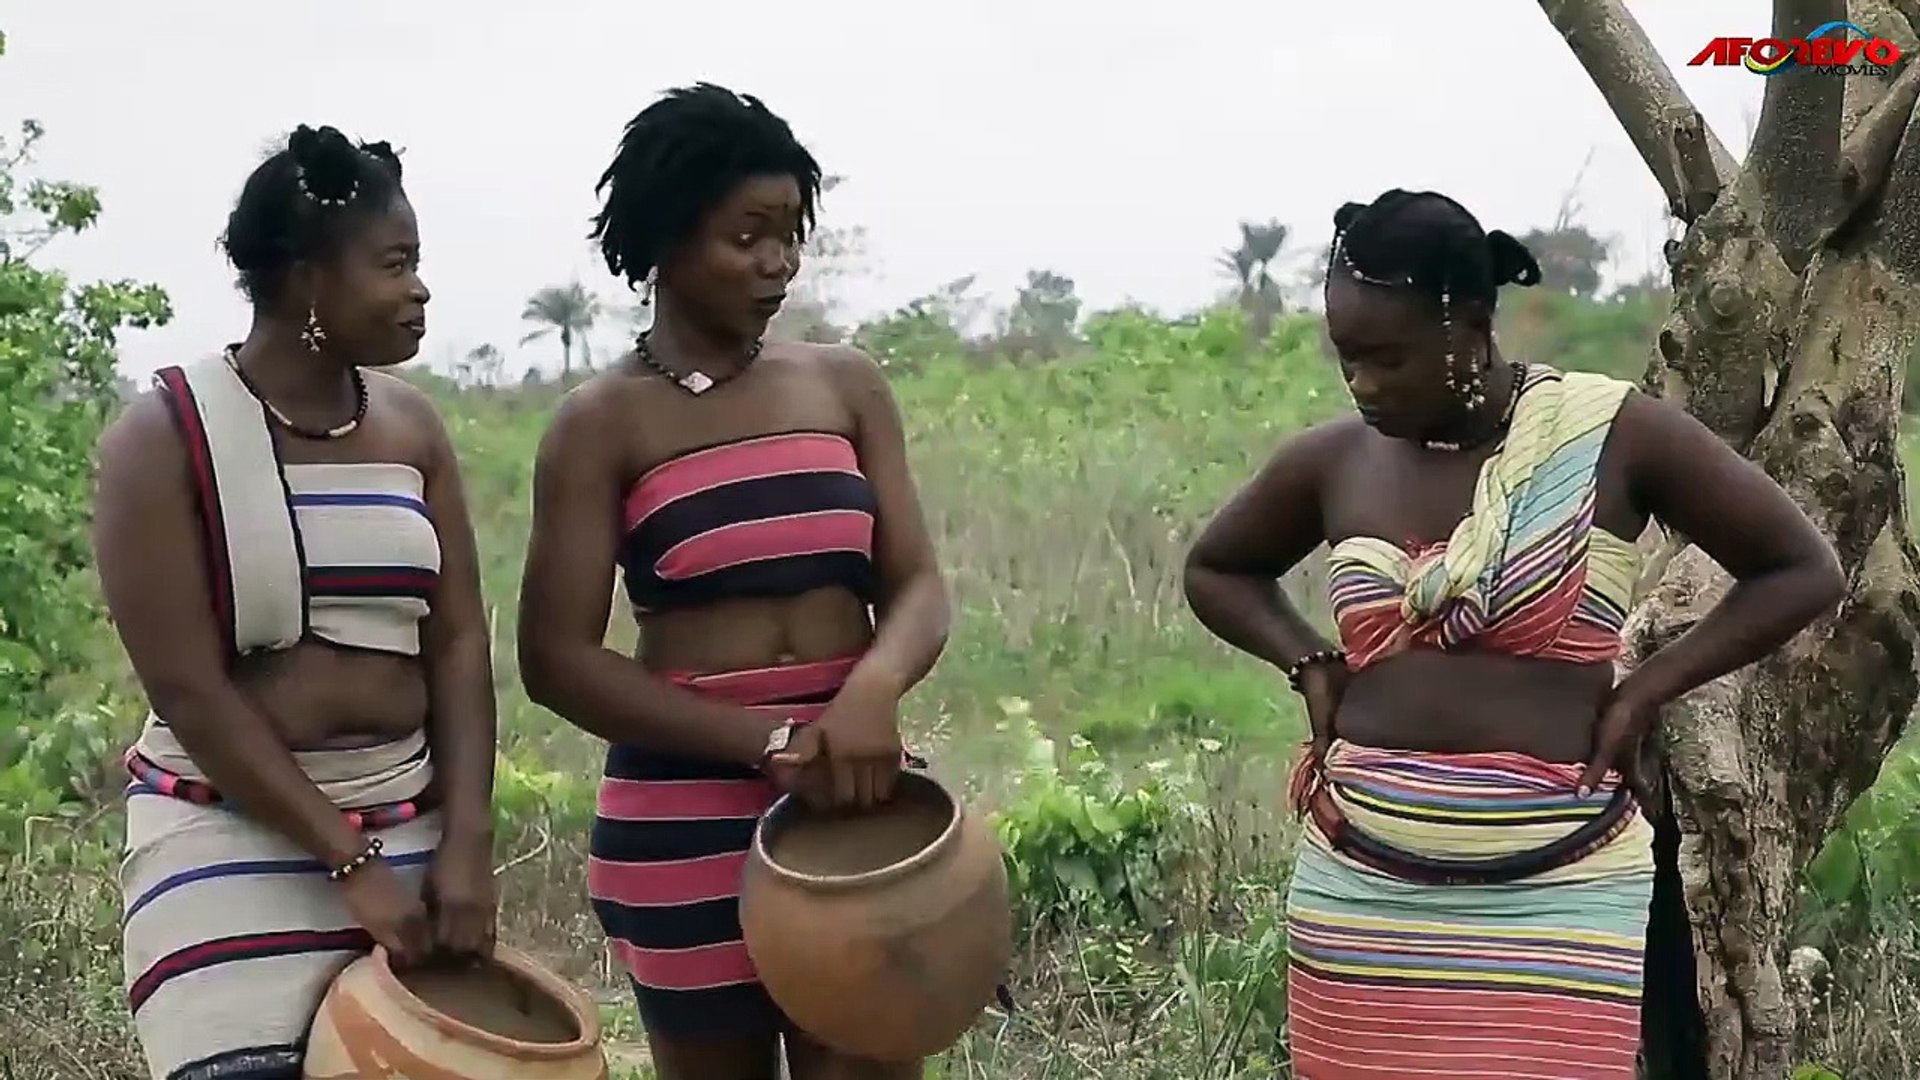 Ulomma The Pretty Angel In Love With A Poor Hunter That Rescued Her Life 2 - NIGERIAN MOVIES 2019